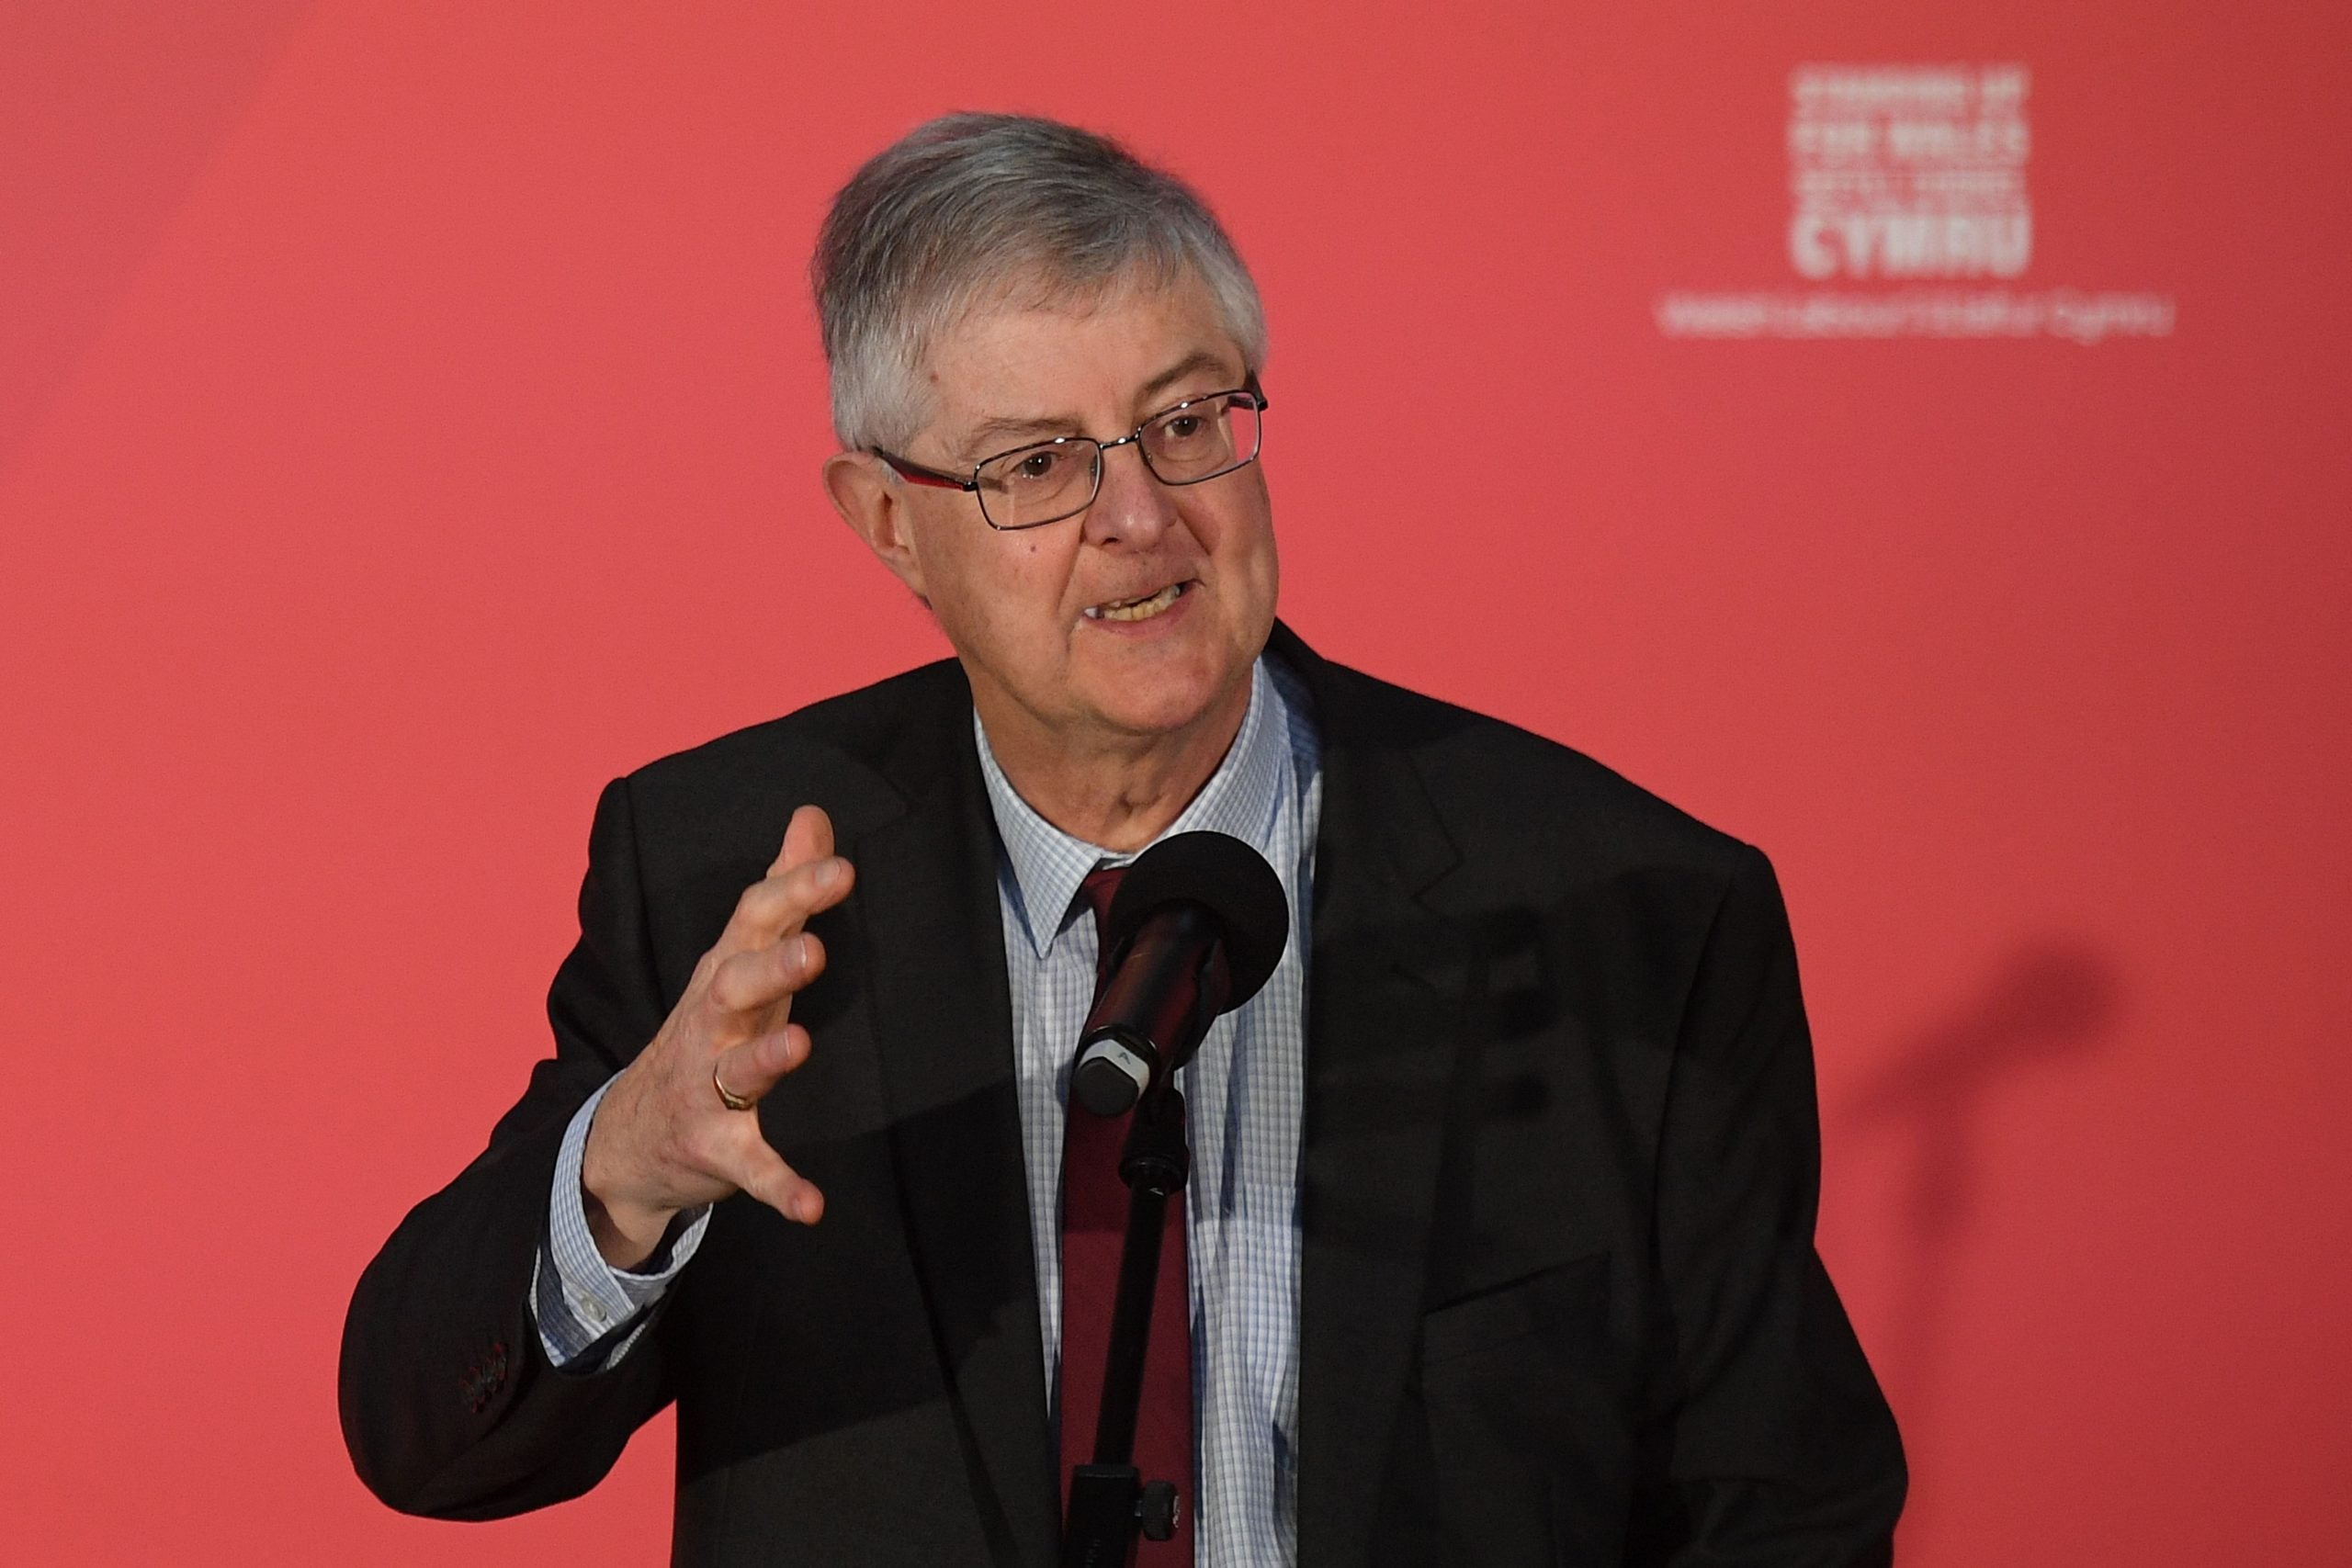 Welsh voters are starting to appreciate Mark Drakeford